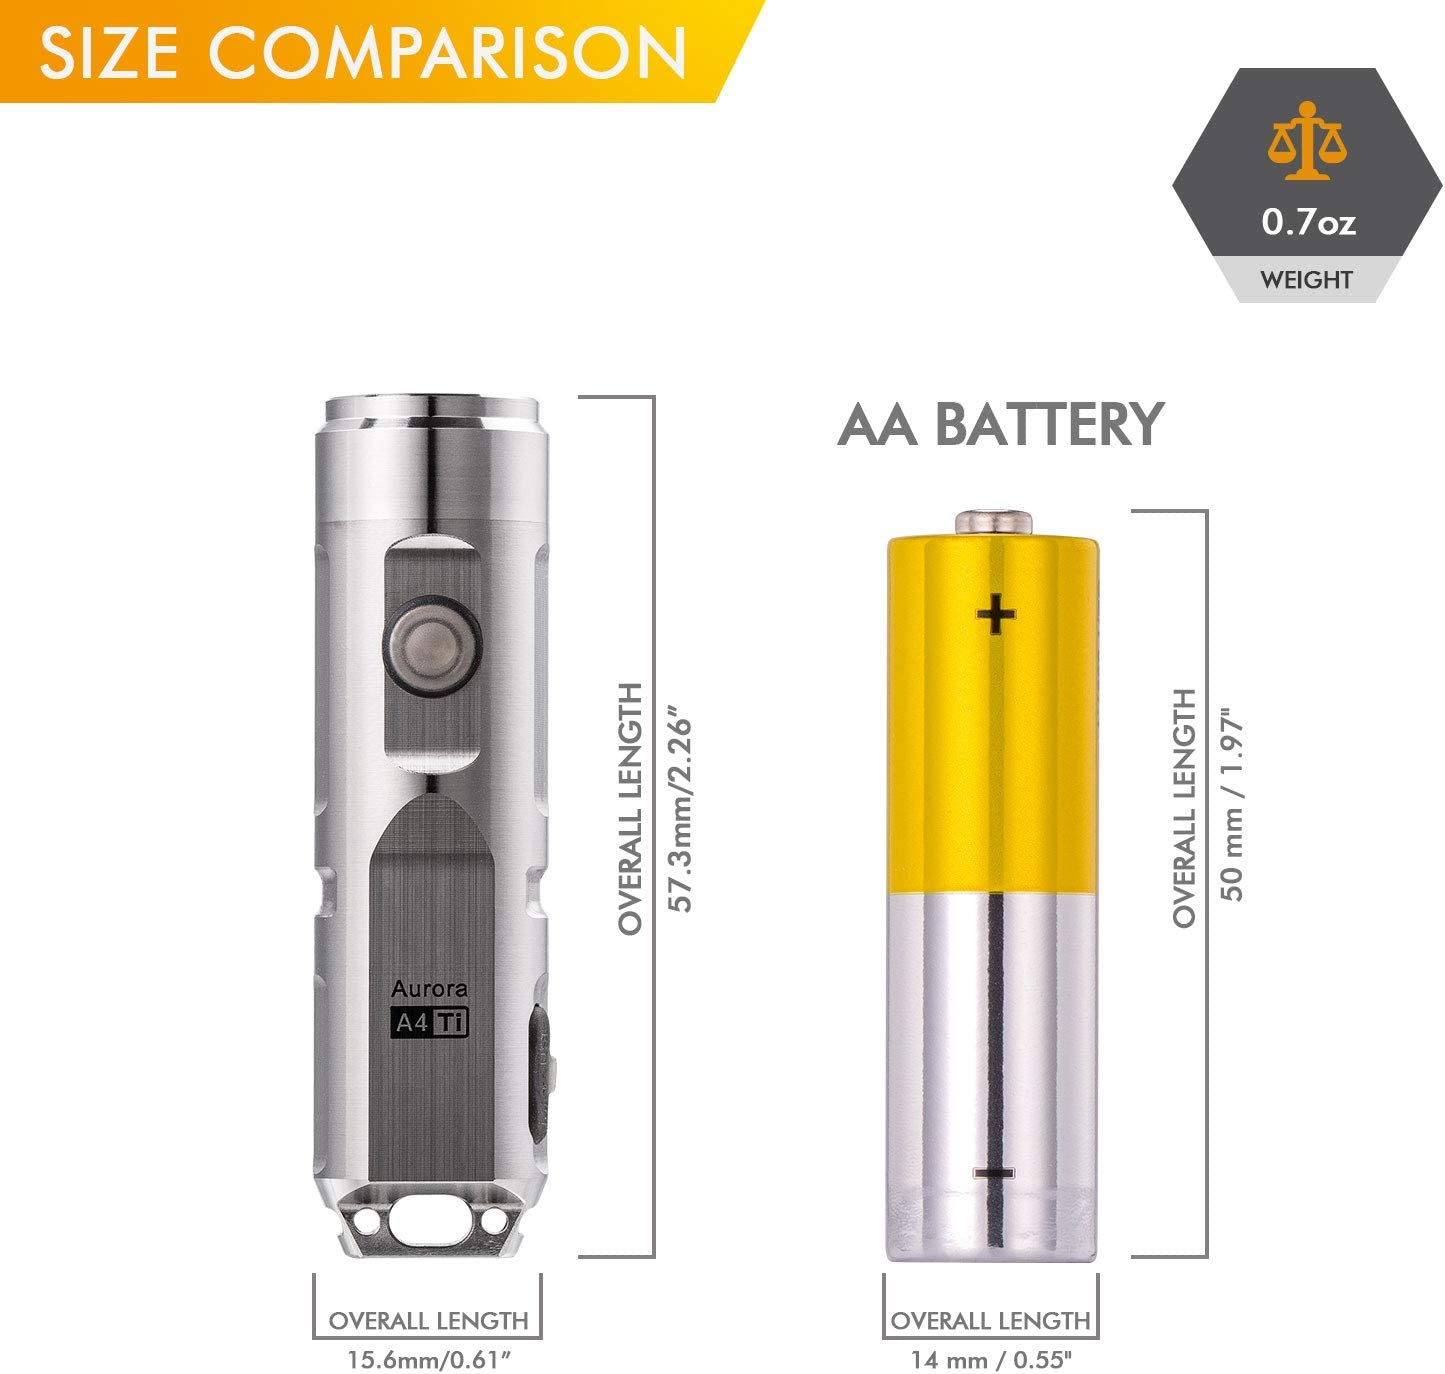 (Upgraded) RovyVon Aurora A4 Titanium Rechargeable LED Flashlight 650 Lumens EDC Mini Handheld Torches for Home Campin Hiking(Silver) Silver